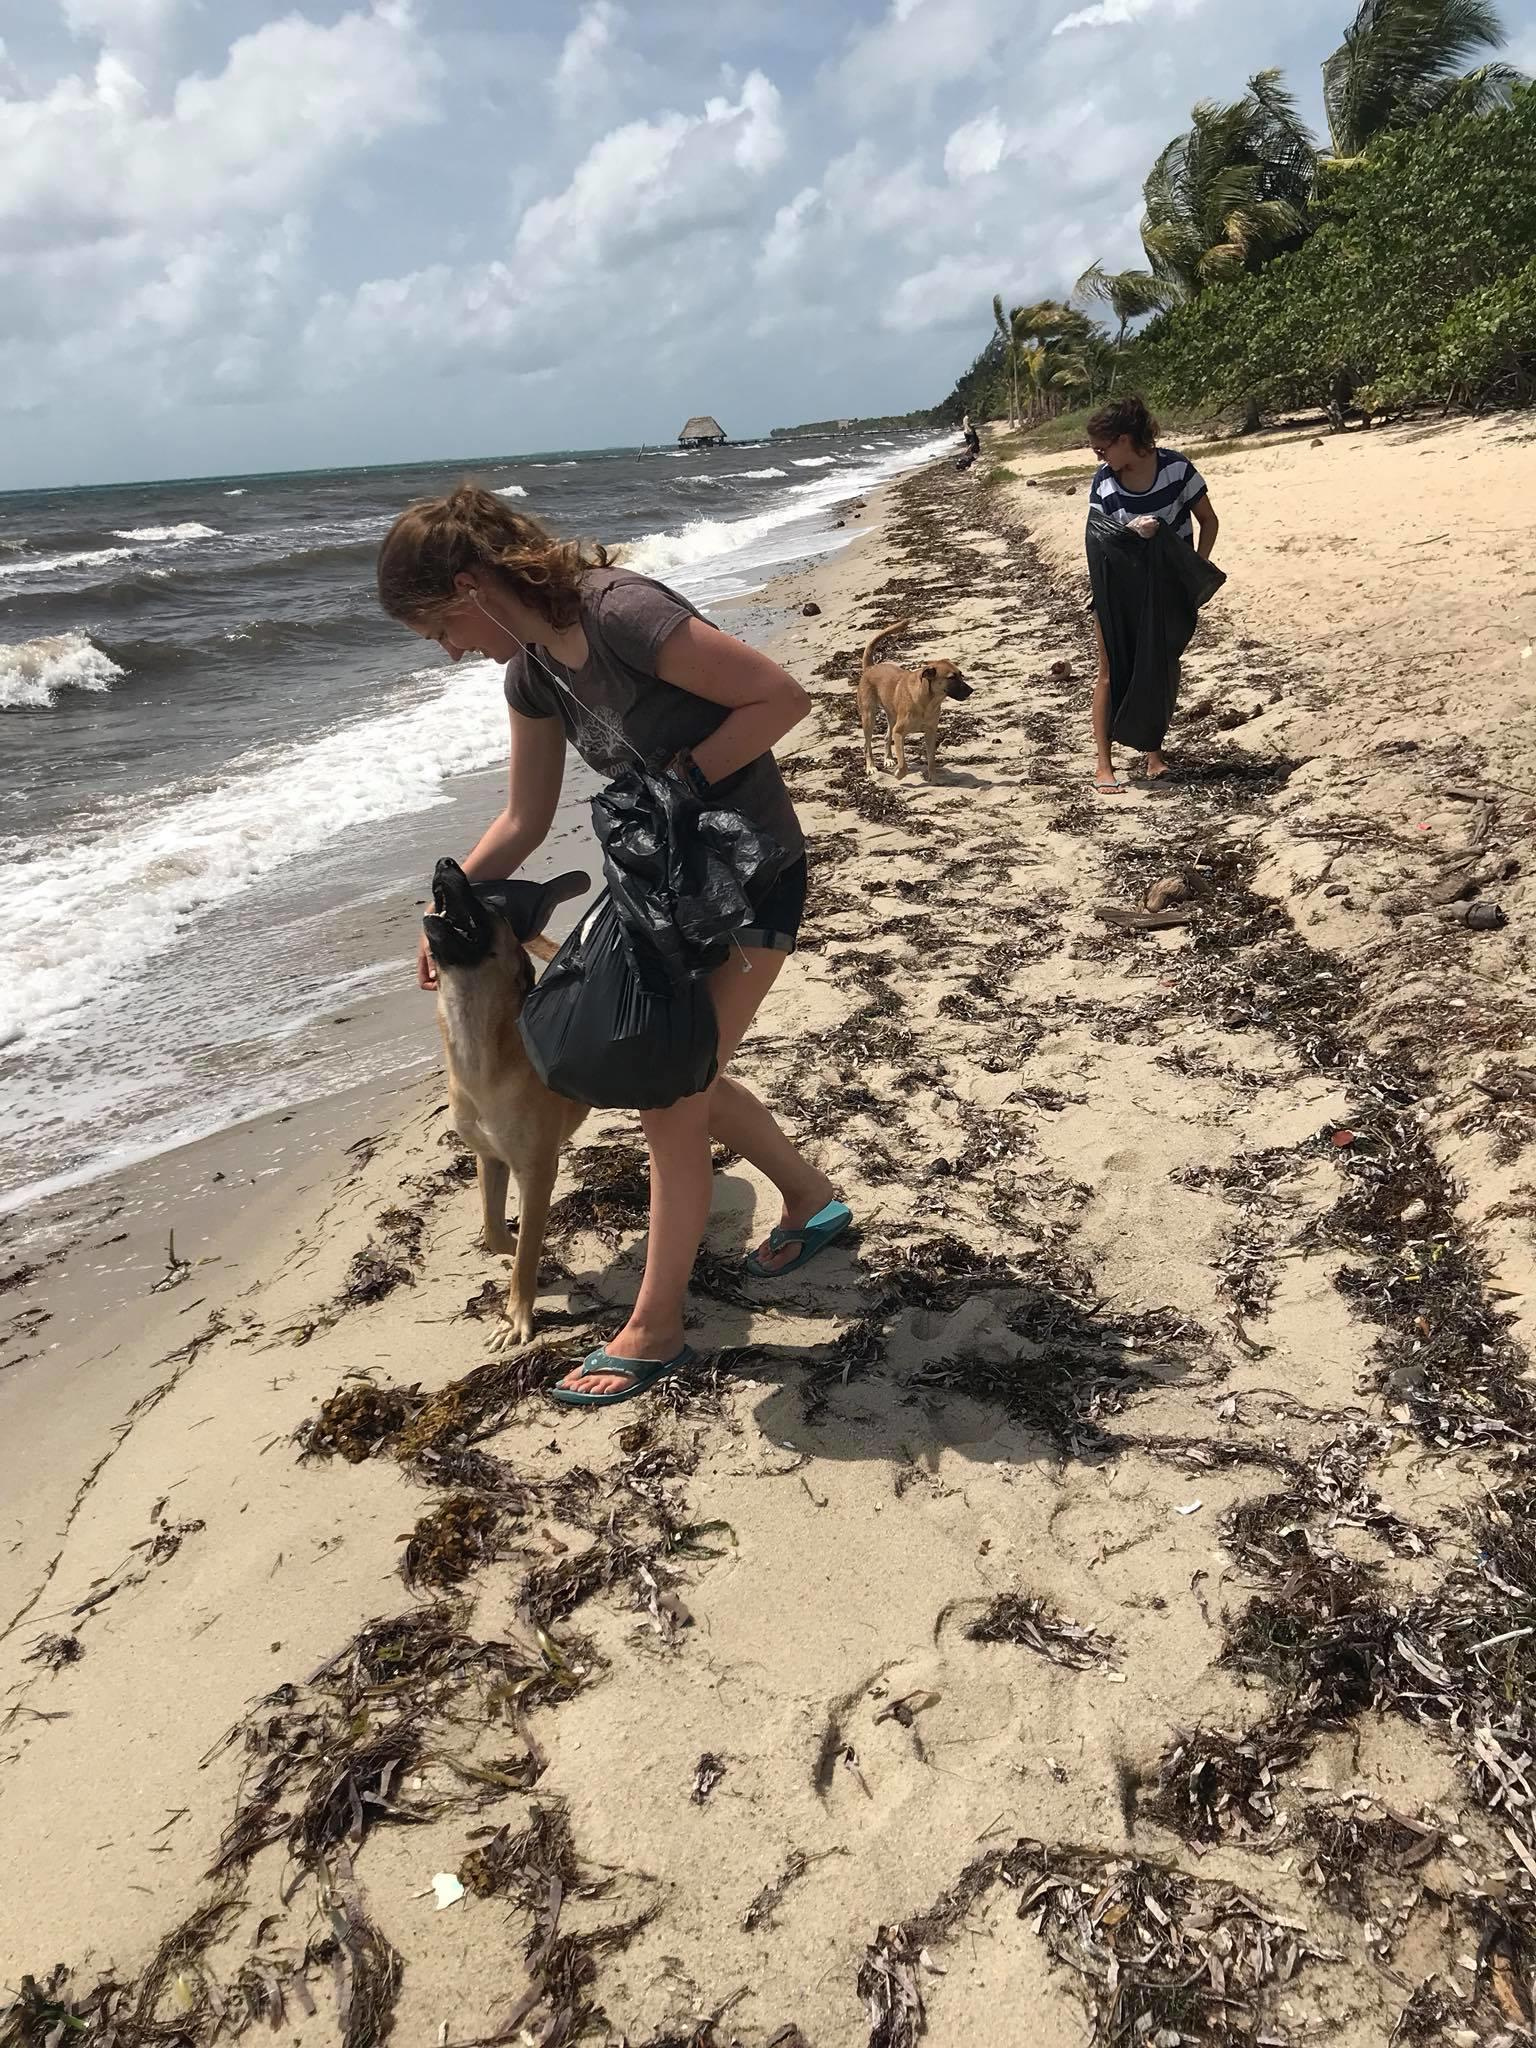 Projects Abroad Conservation volunteering for groups in Belize beach cleanup